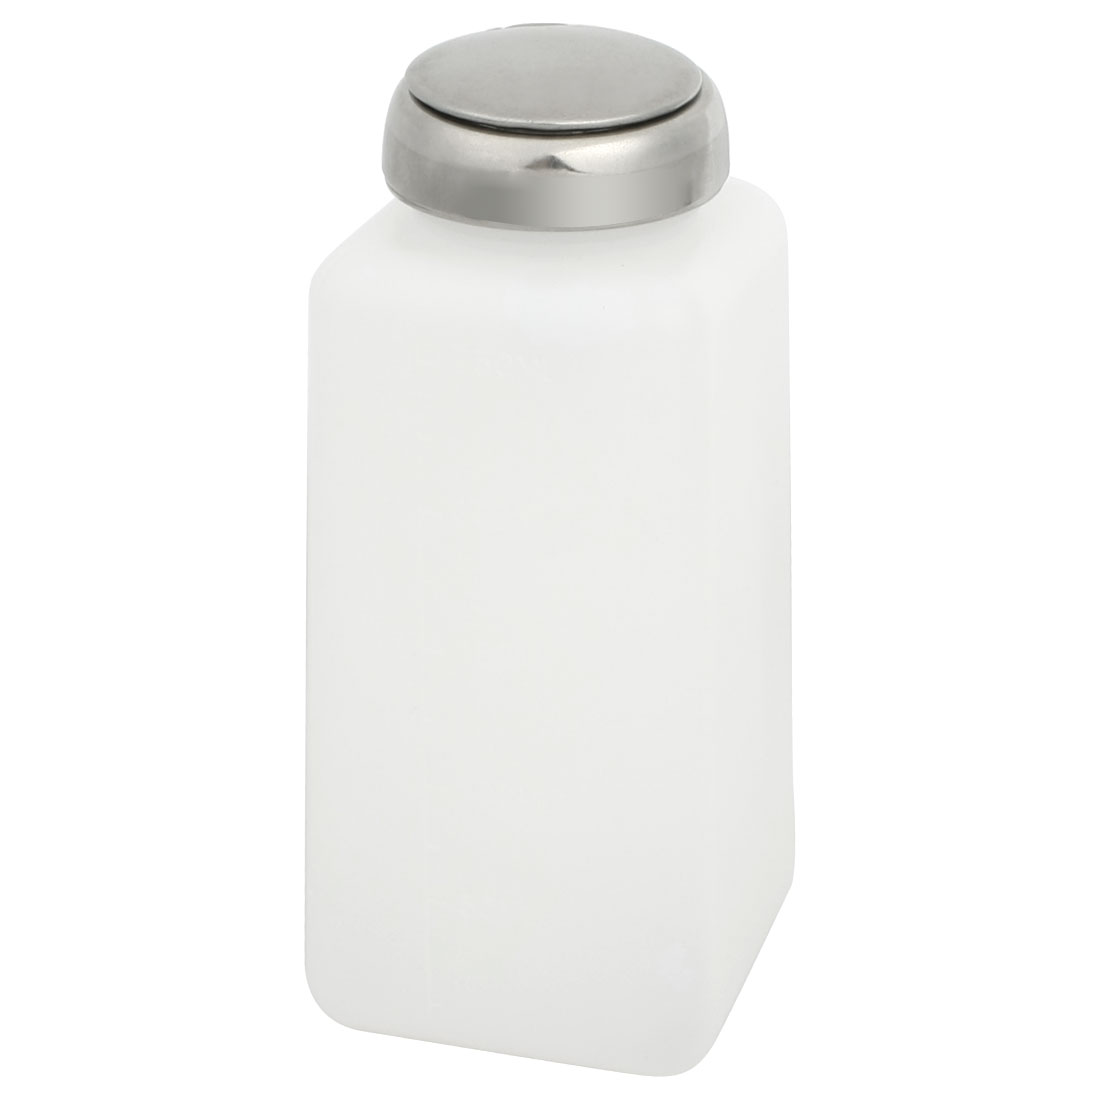 Silver-Tone-Metal-Cap-Liquid-Container-Alcohol-Bottle-250ml-Capacity